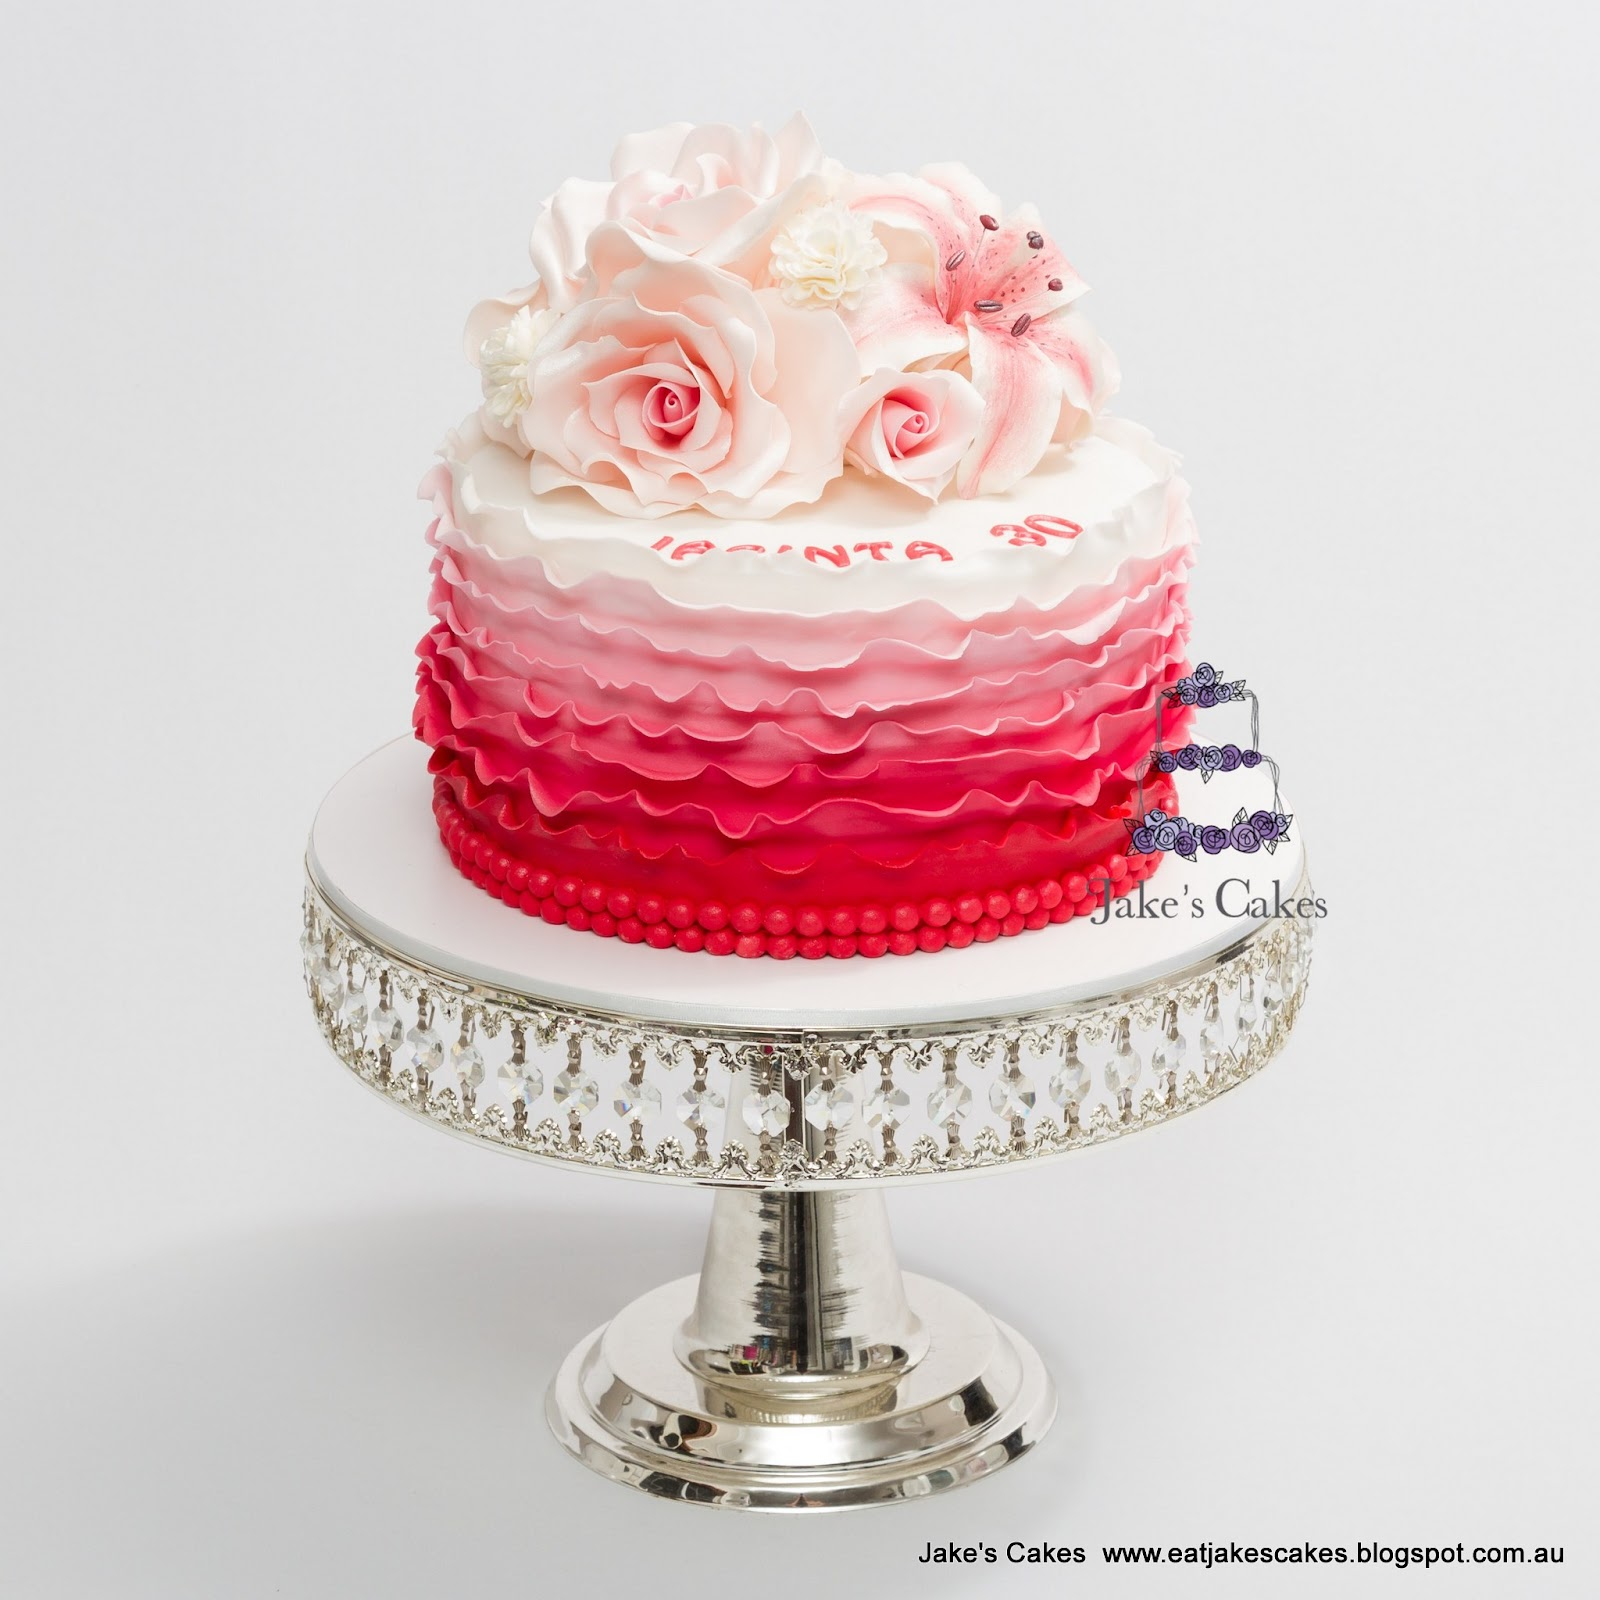 Jakes cakes ombre ruffles and sugar flowers ombre ruffles and sugar flowers izmirmasajfo